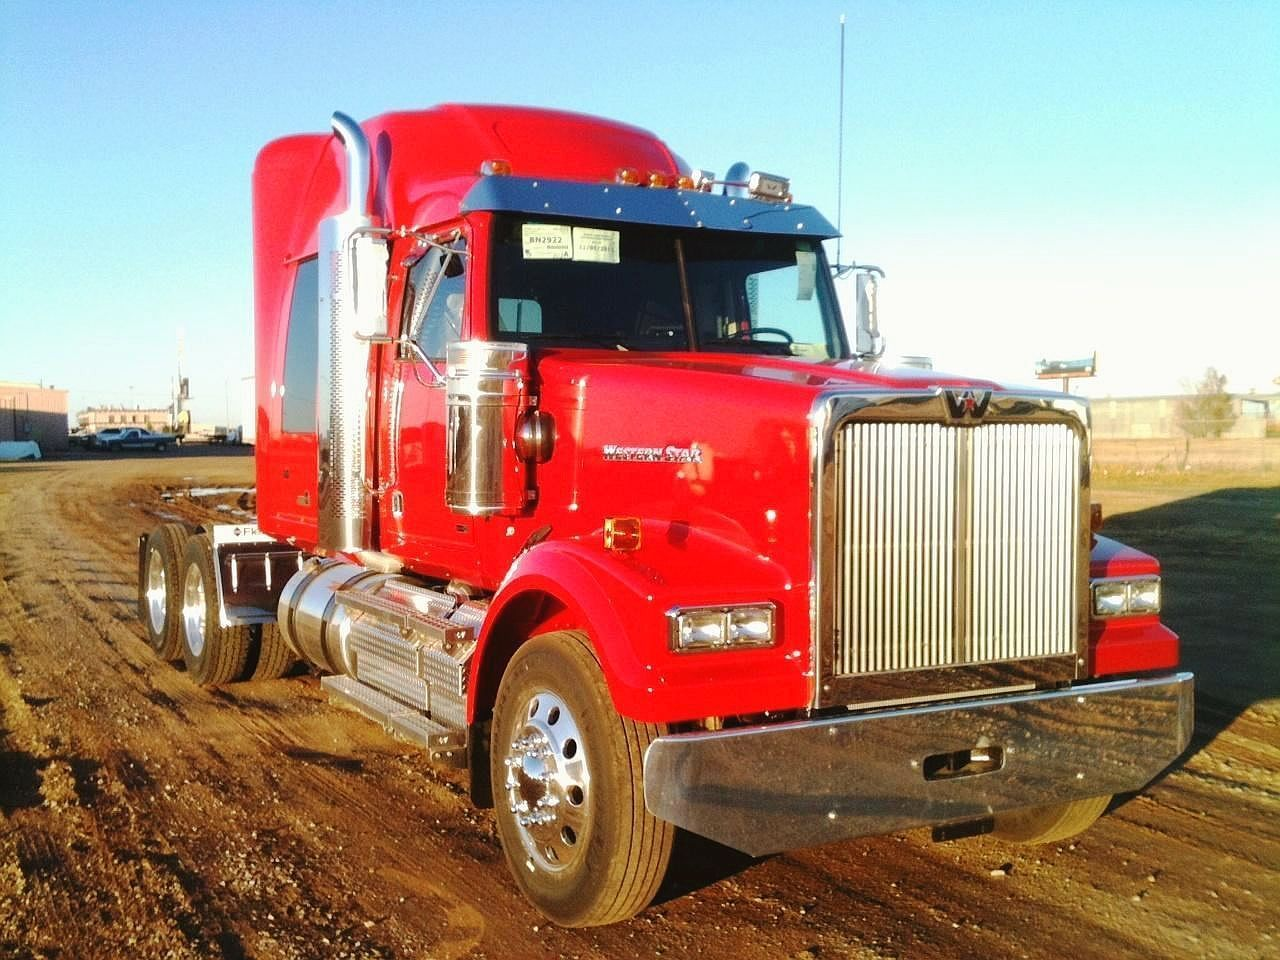 We have 483 western star trucks for sale lease search our listings for new used trucks updated daily from of dealers private sellers